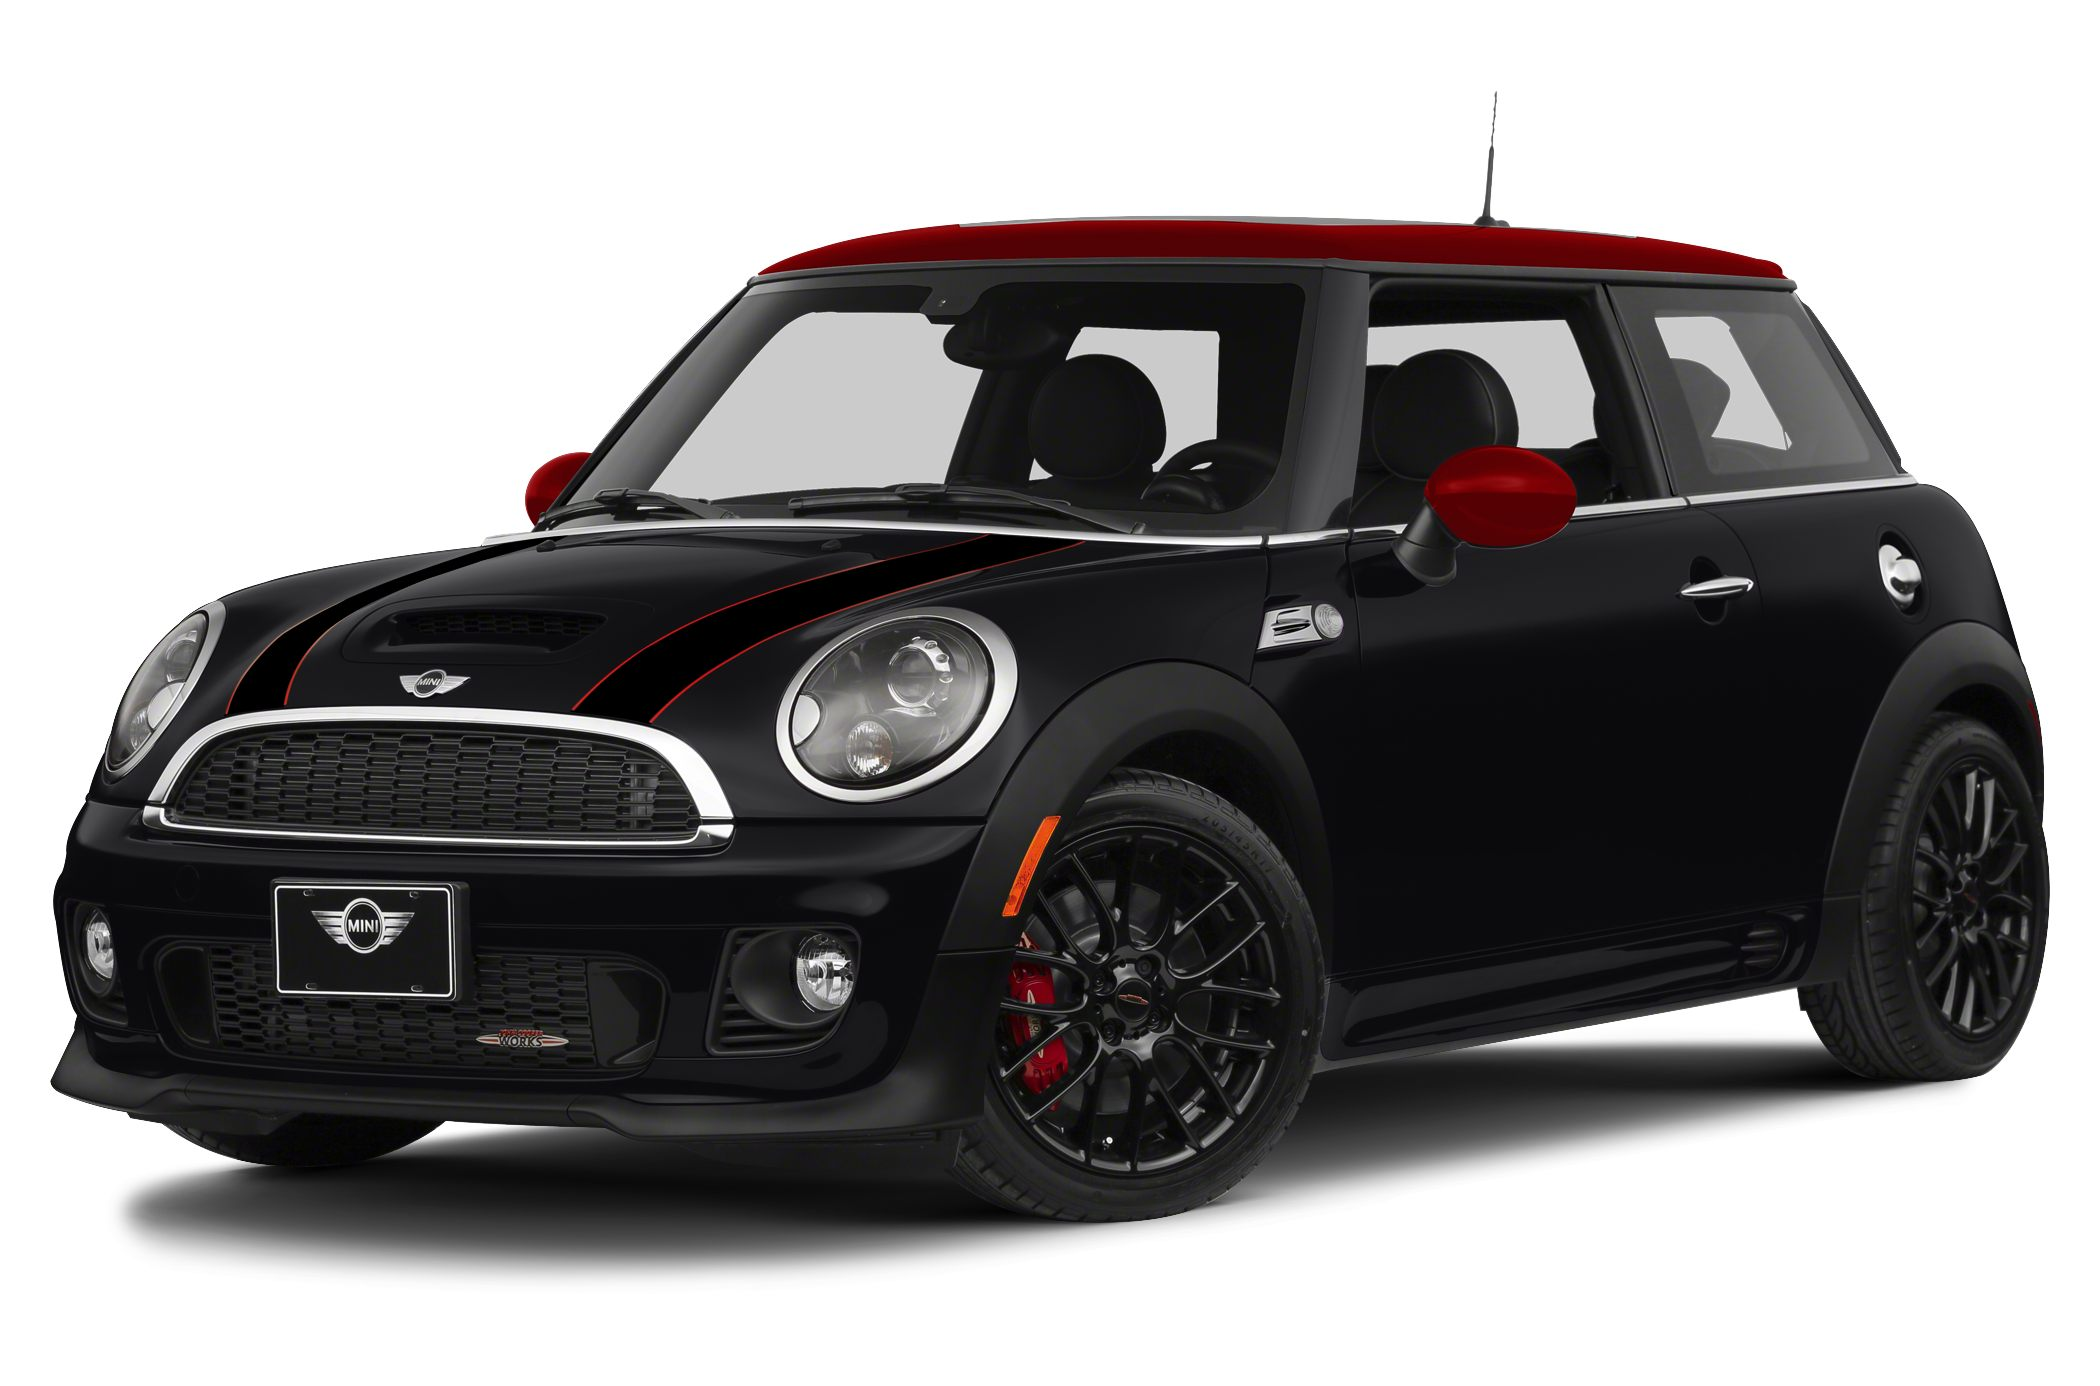 2017 Mini John Cooper Works Pricing And Specs